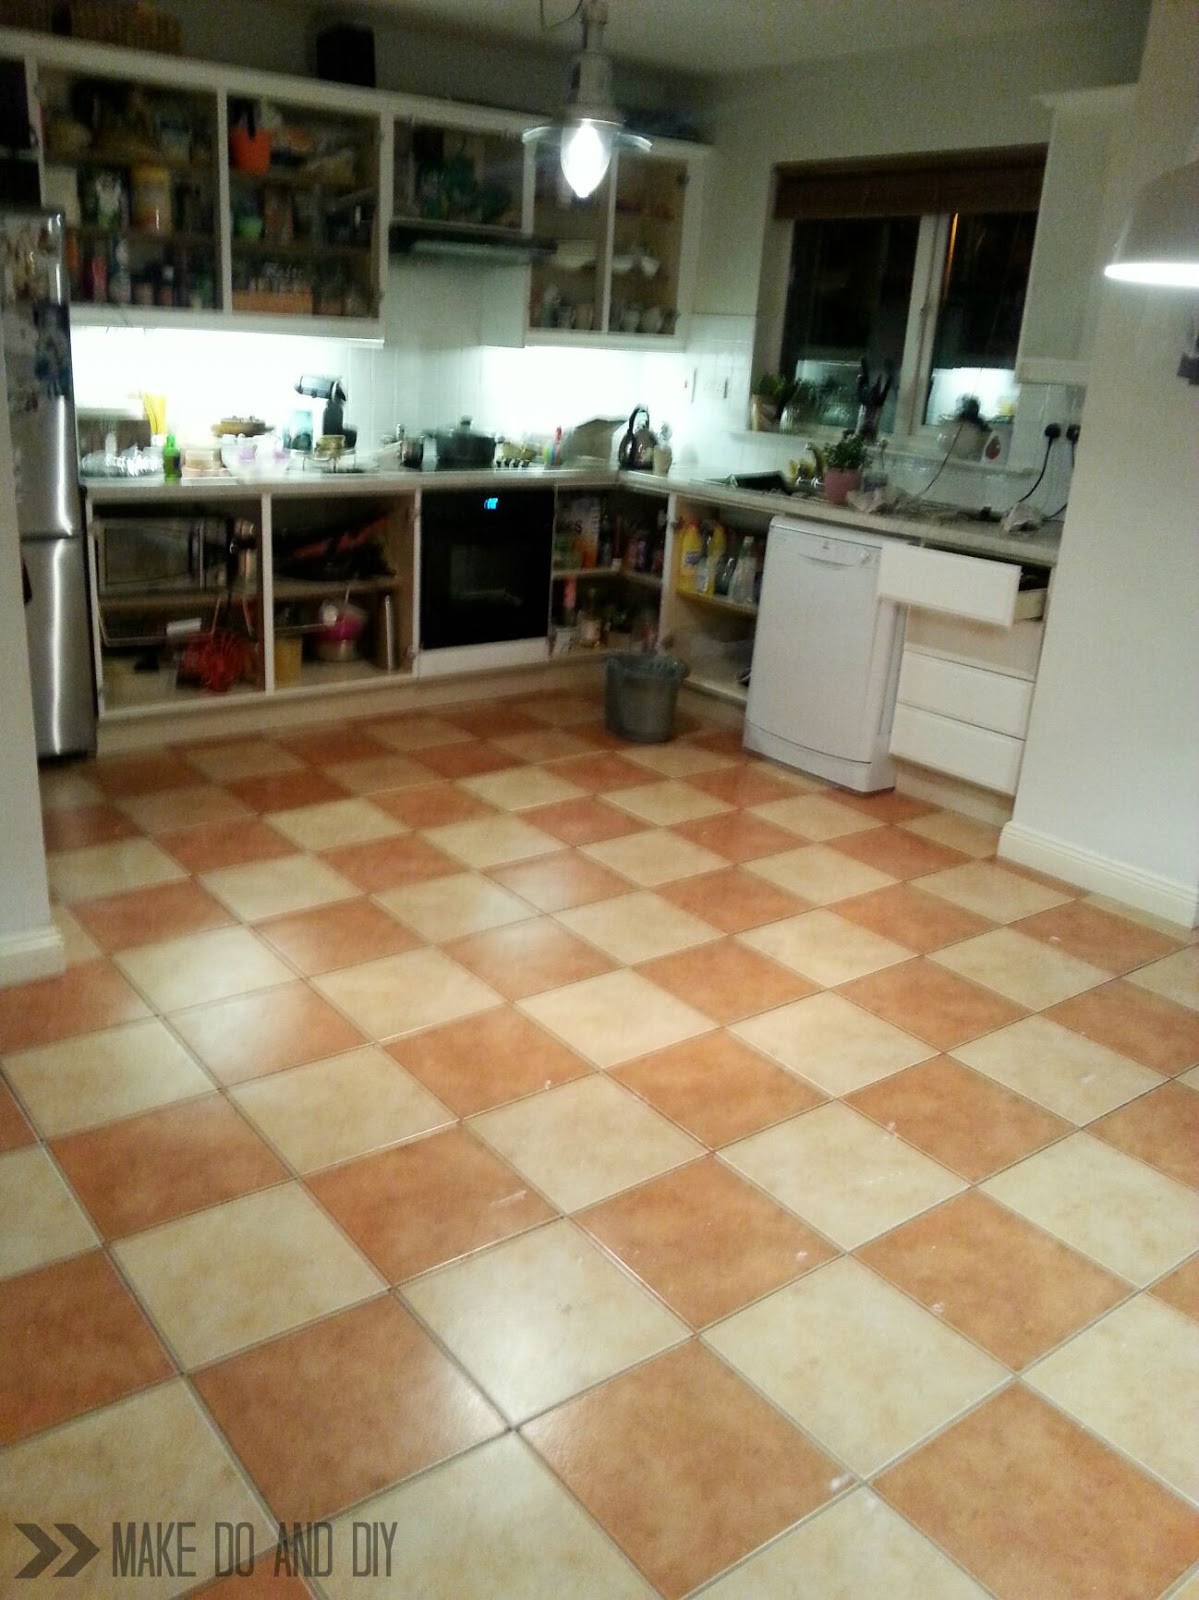 Painted tile floor no really make do and diy how to paint a tile floor and what you should think about before you do dailygadgetfo Images